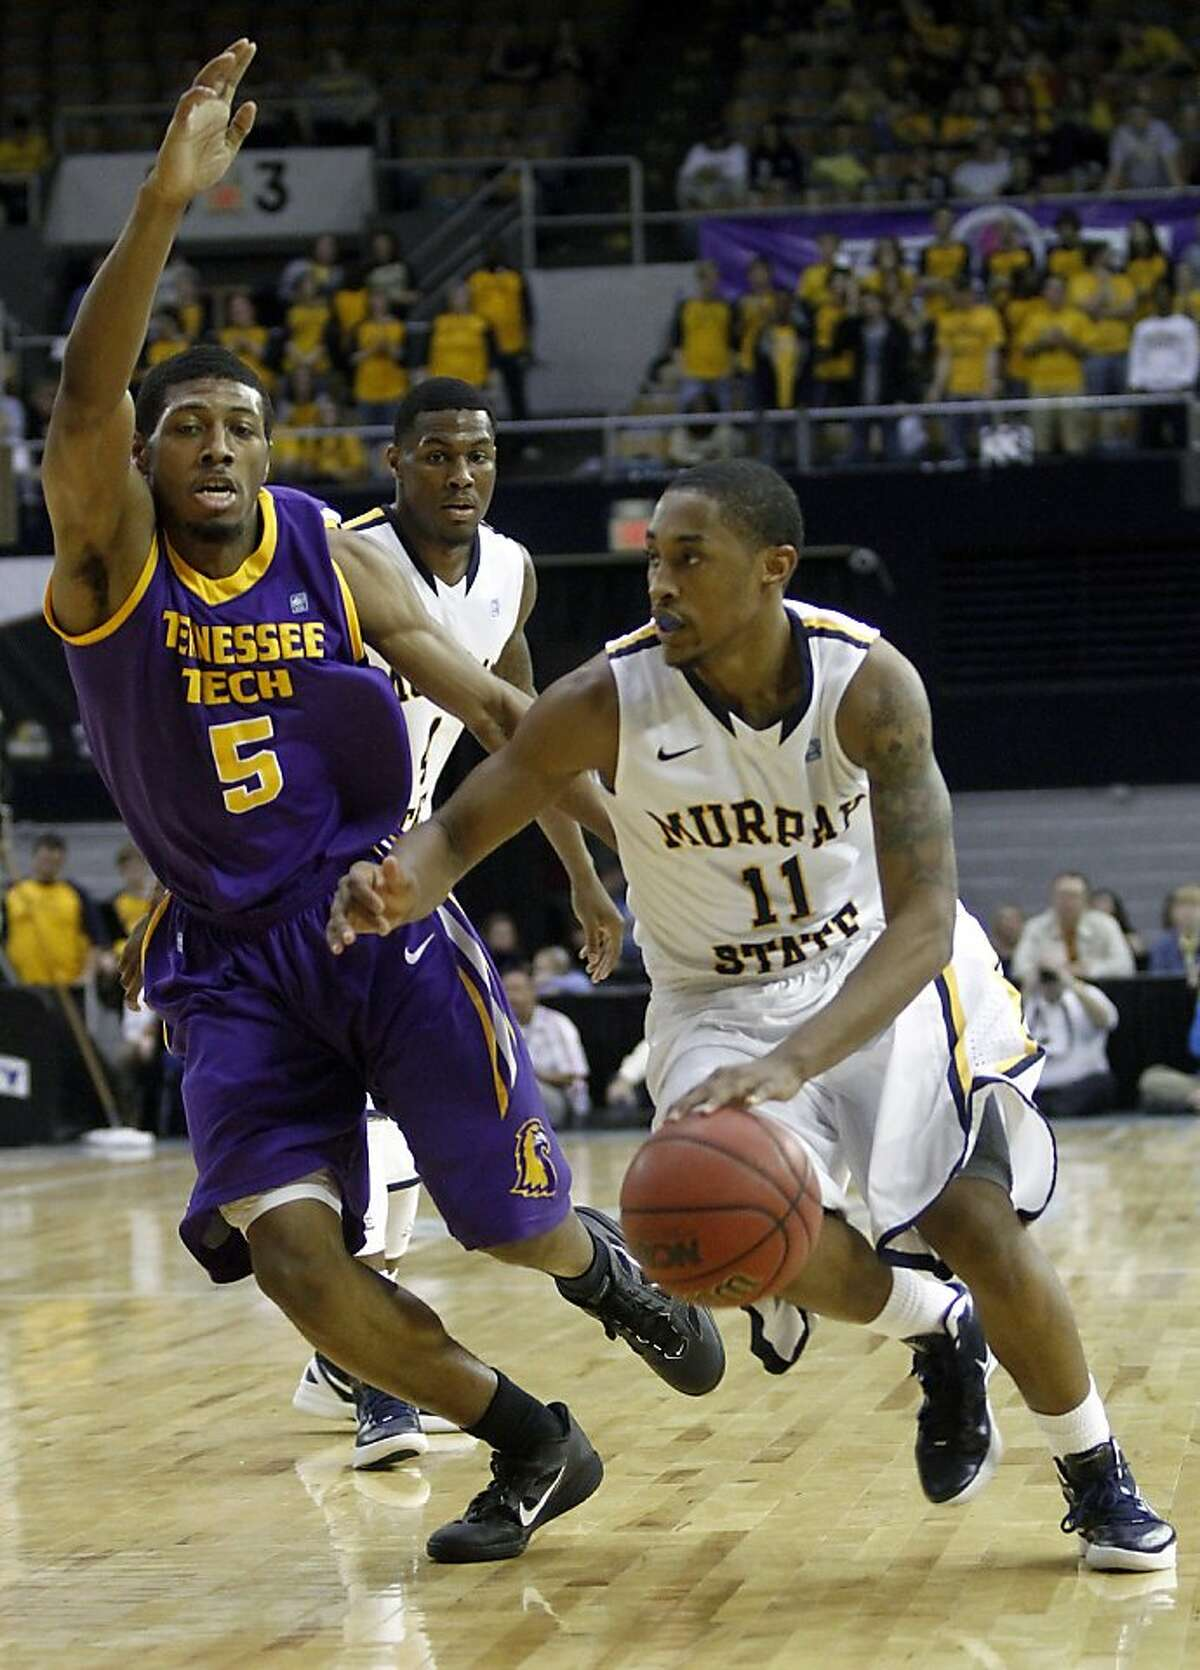 Murray State's Donte Poole (11) drives against Tennessee Tech's Javon McKay (5) in the second half of an NCAA college basketball game at the Ohio Valley Conference tournament on Friday, March 2, 2012, in Nashville, Tenn. Murray State won 78-58. (AP Photo/Wade Payne)